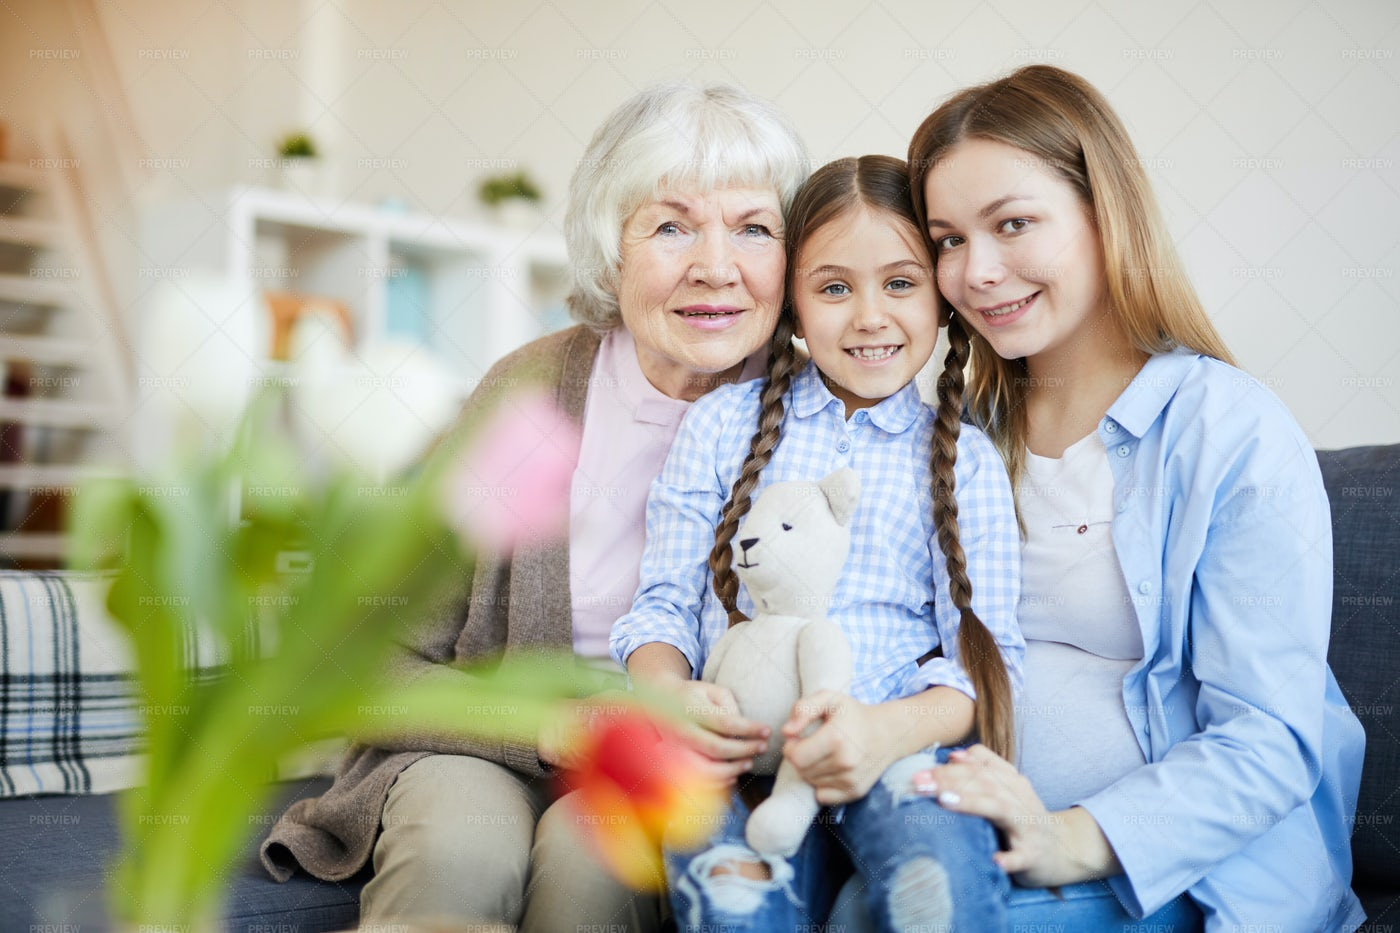 Womens Family Portrait At Home: Stock Photos